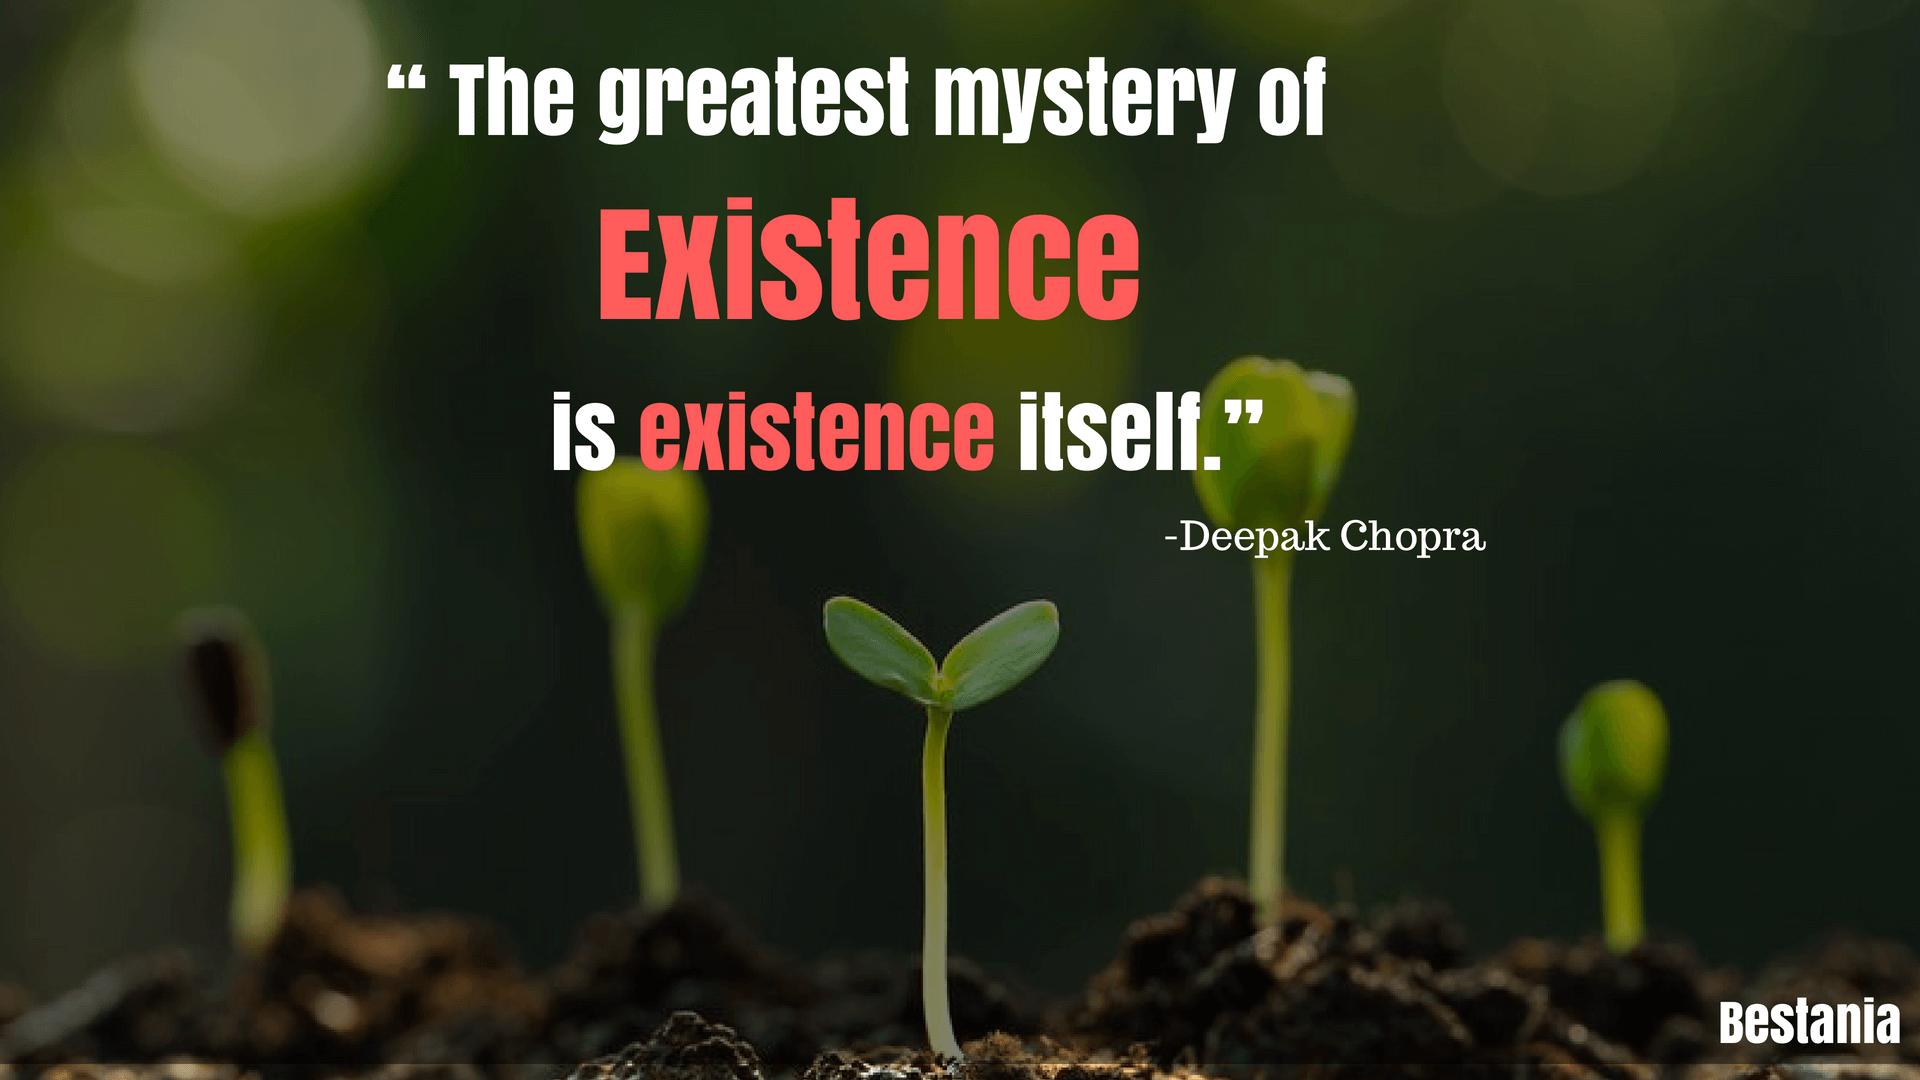 """THE GREATEST MYSTERY OF EXISTENCE IS EXISTENCE ITSELF."" – DEEPAK CHOPRA"